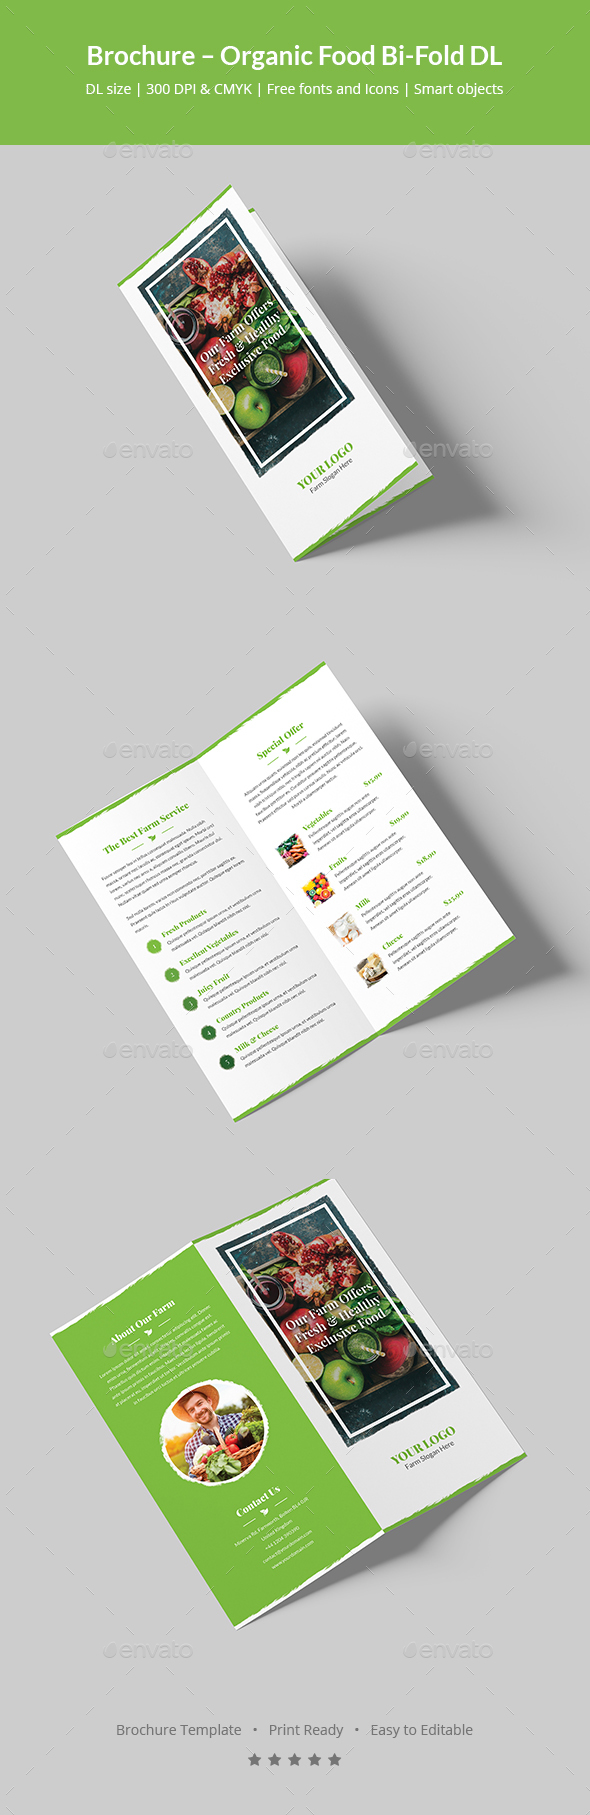 Brochure organic food bi fold dl by artbart graphicriver for Dl brochure template